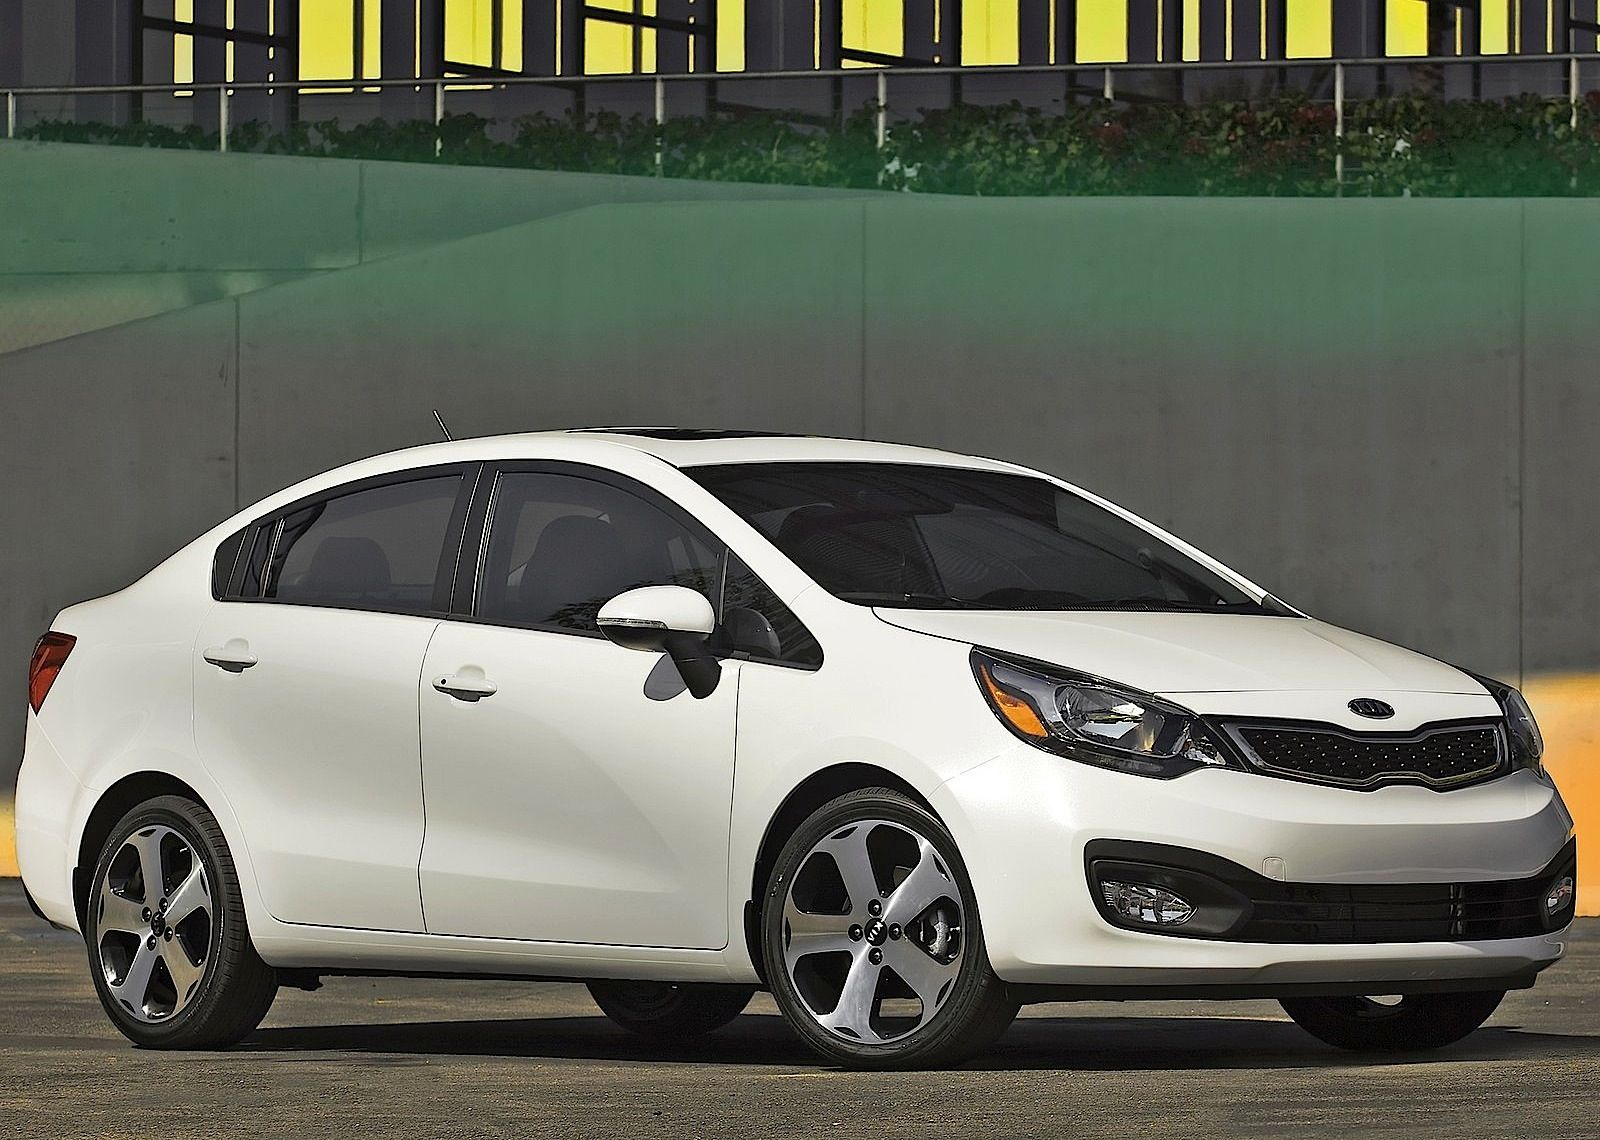 Kia Rio Sedan Specs Photos 2011 2012 2013 2014 2015 2016